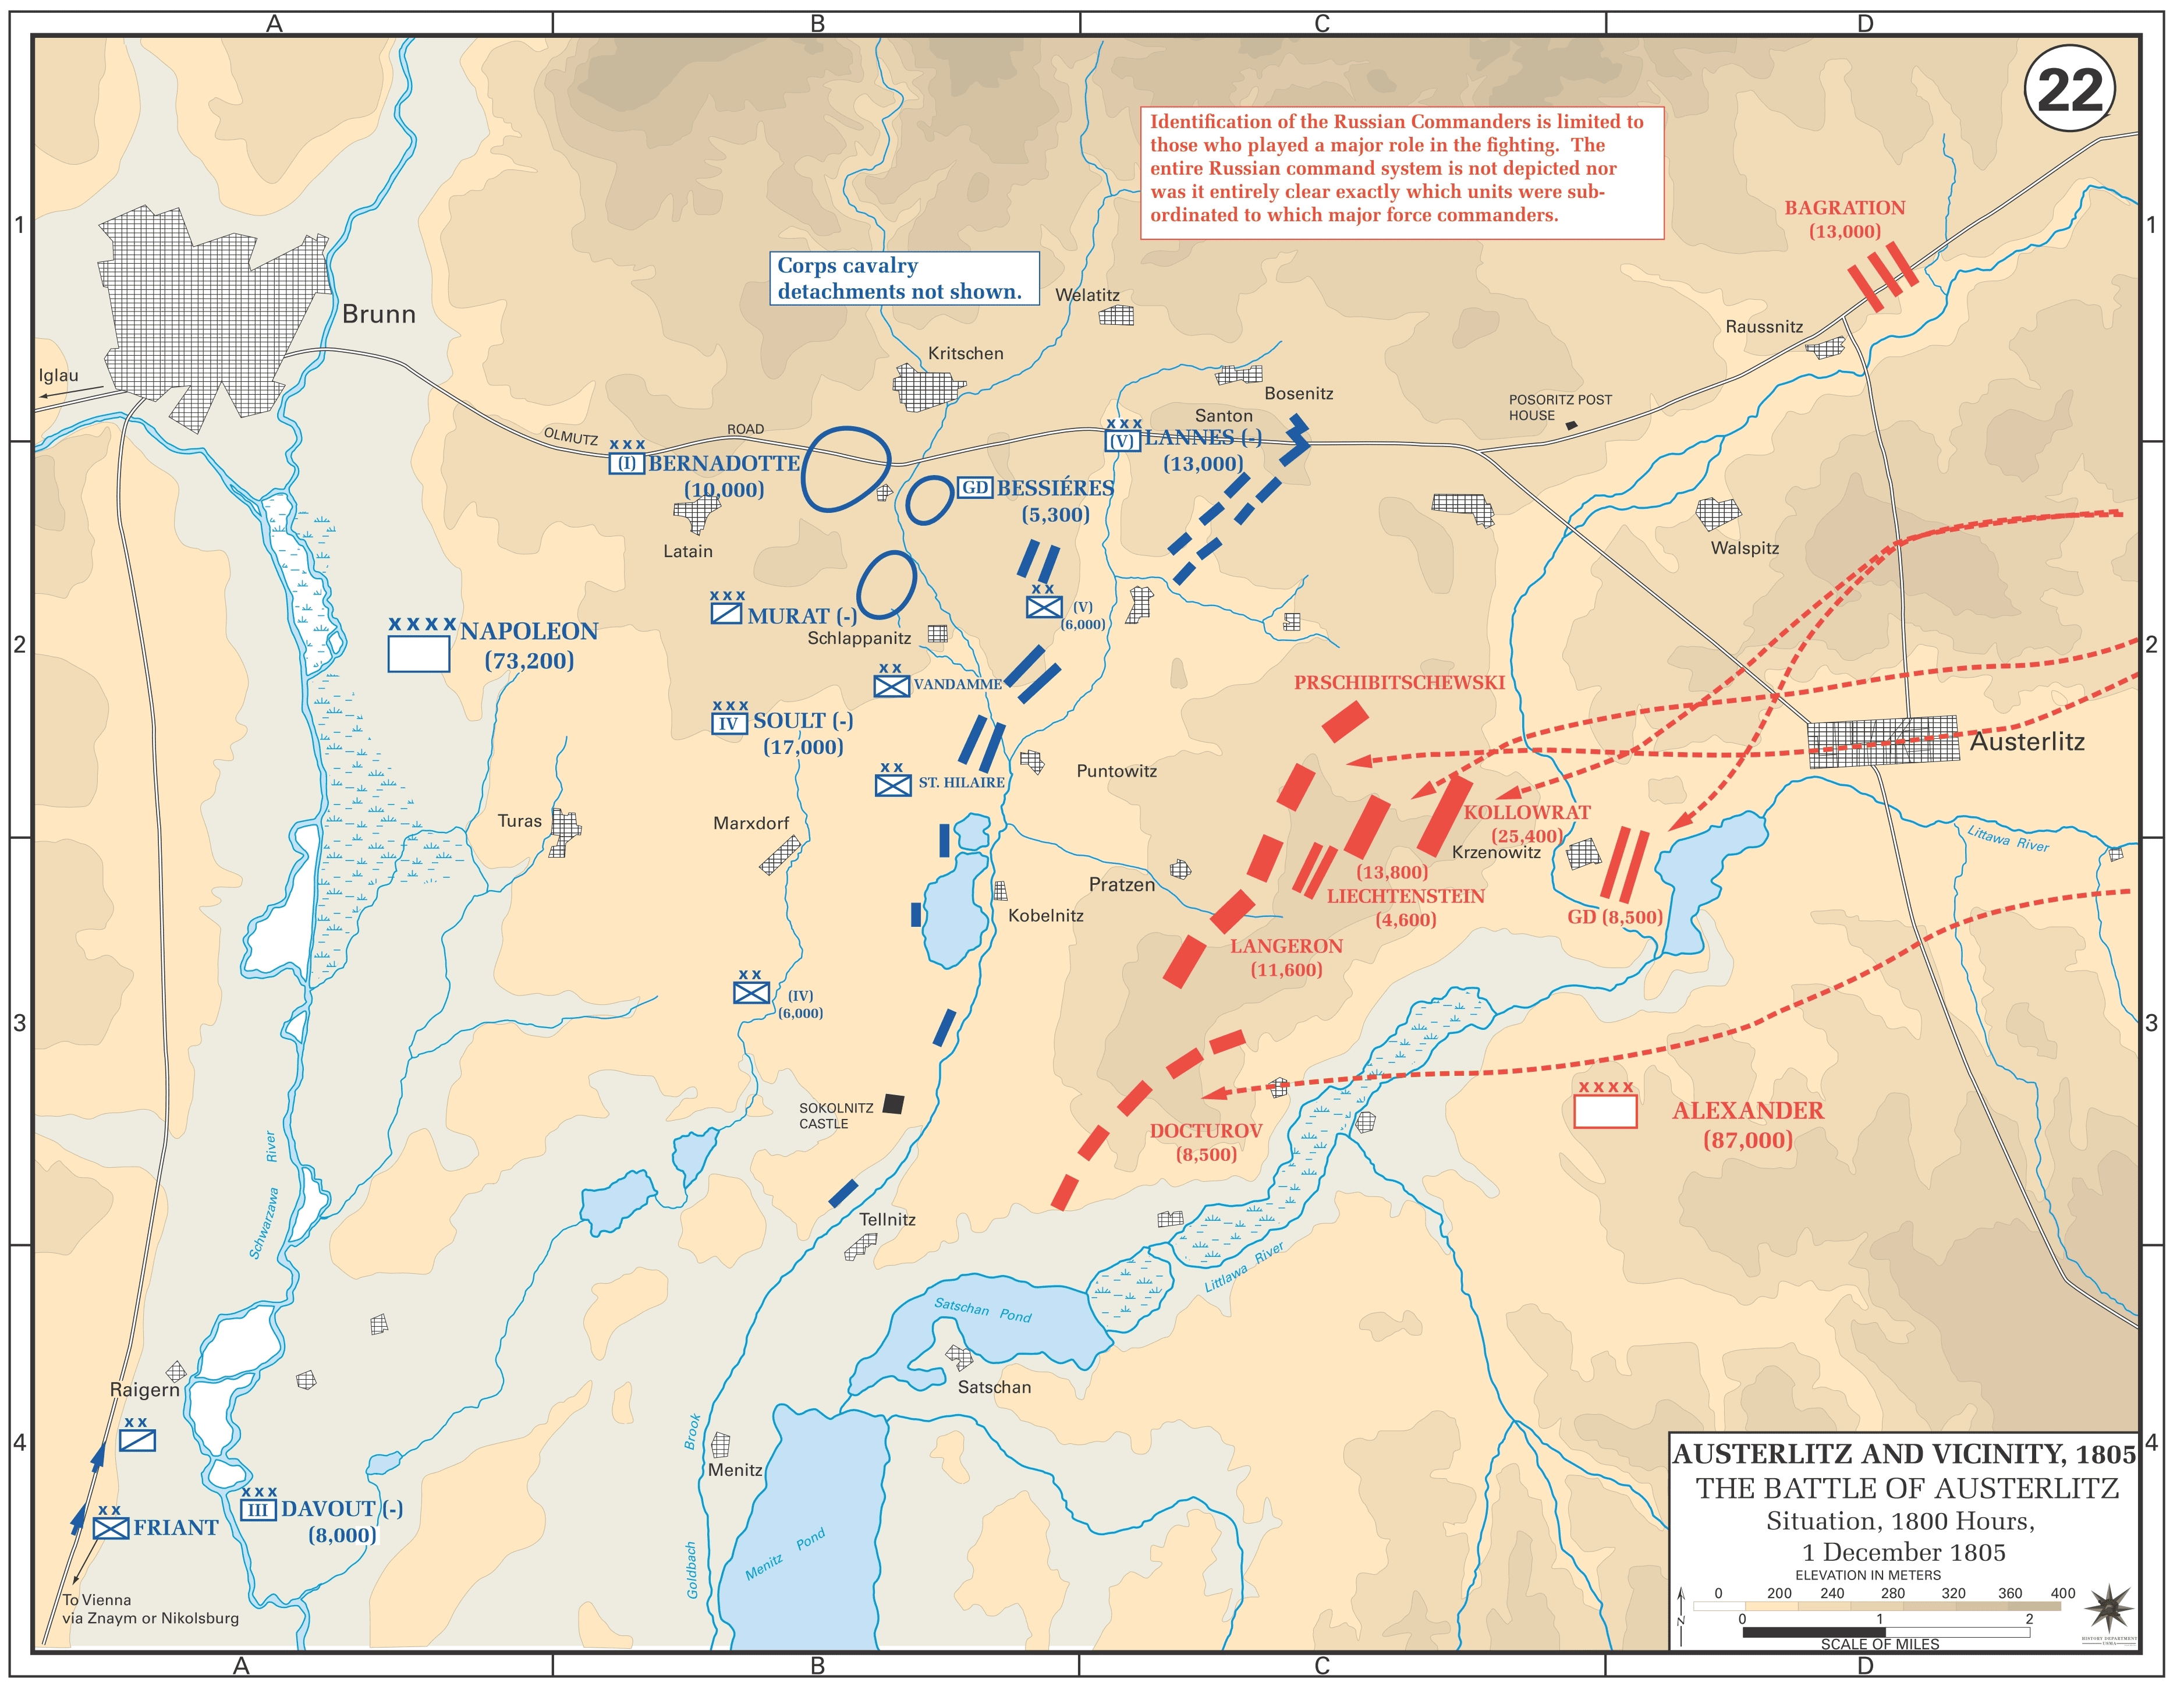 https://upload.wikimedia.org/wikipedia/commons/0/03/Battle_of_Austerlitz%2C_Situation_at_1800%2C_1_December_1805.png